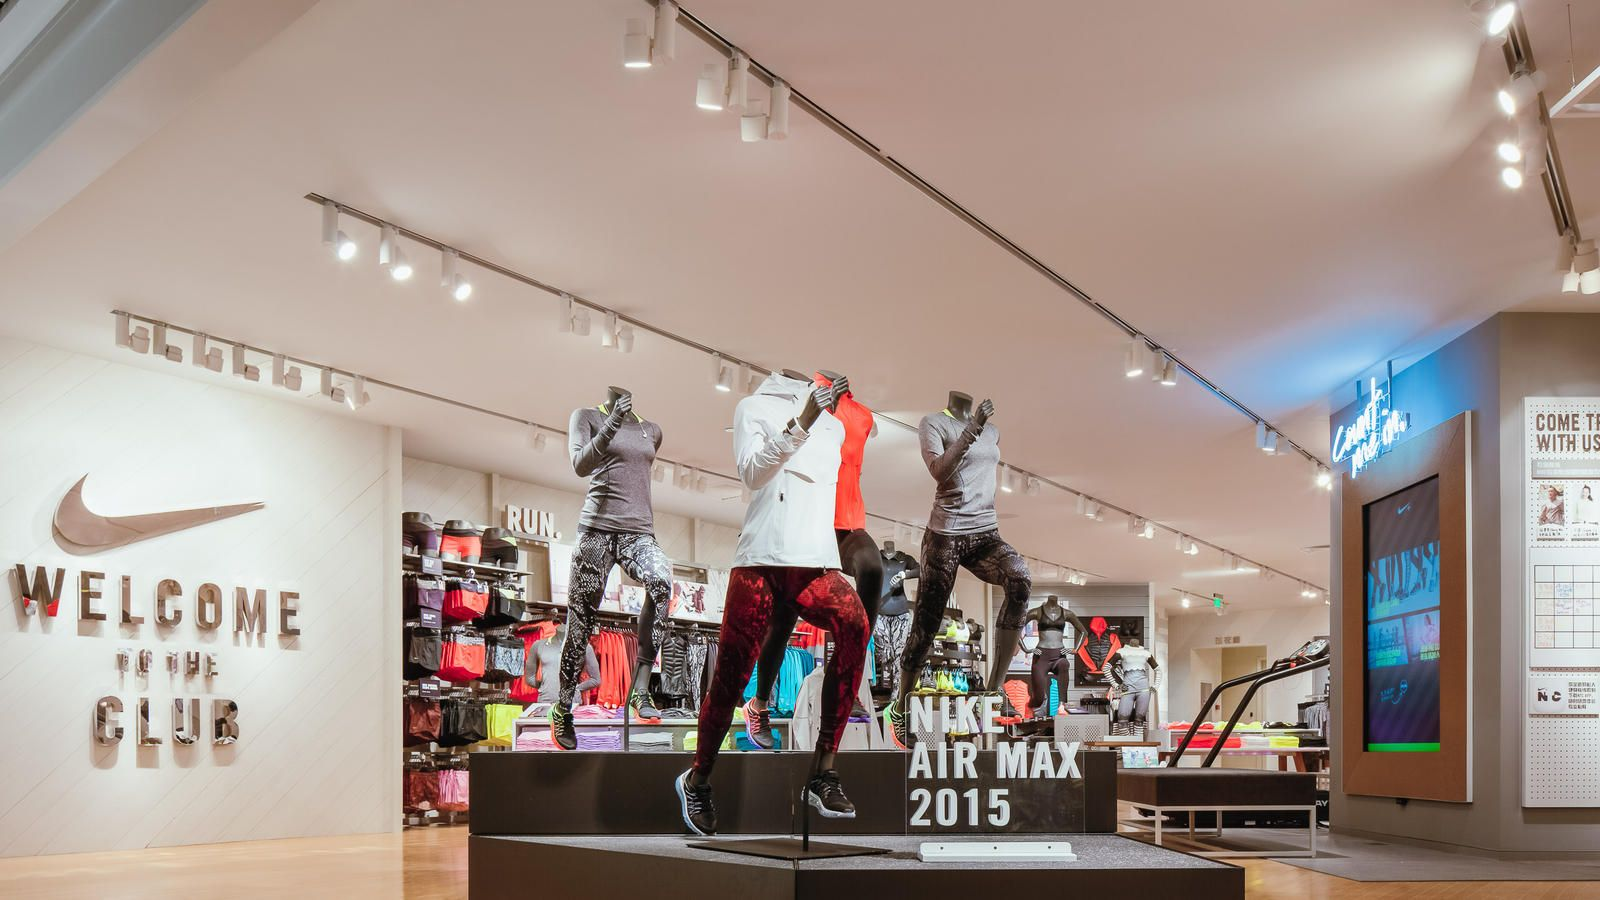 Nike Women'sonly Store with Premium Onsite Sports